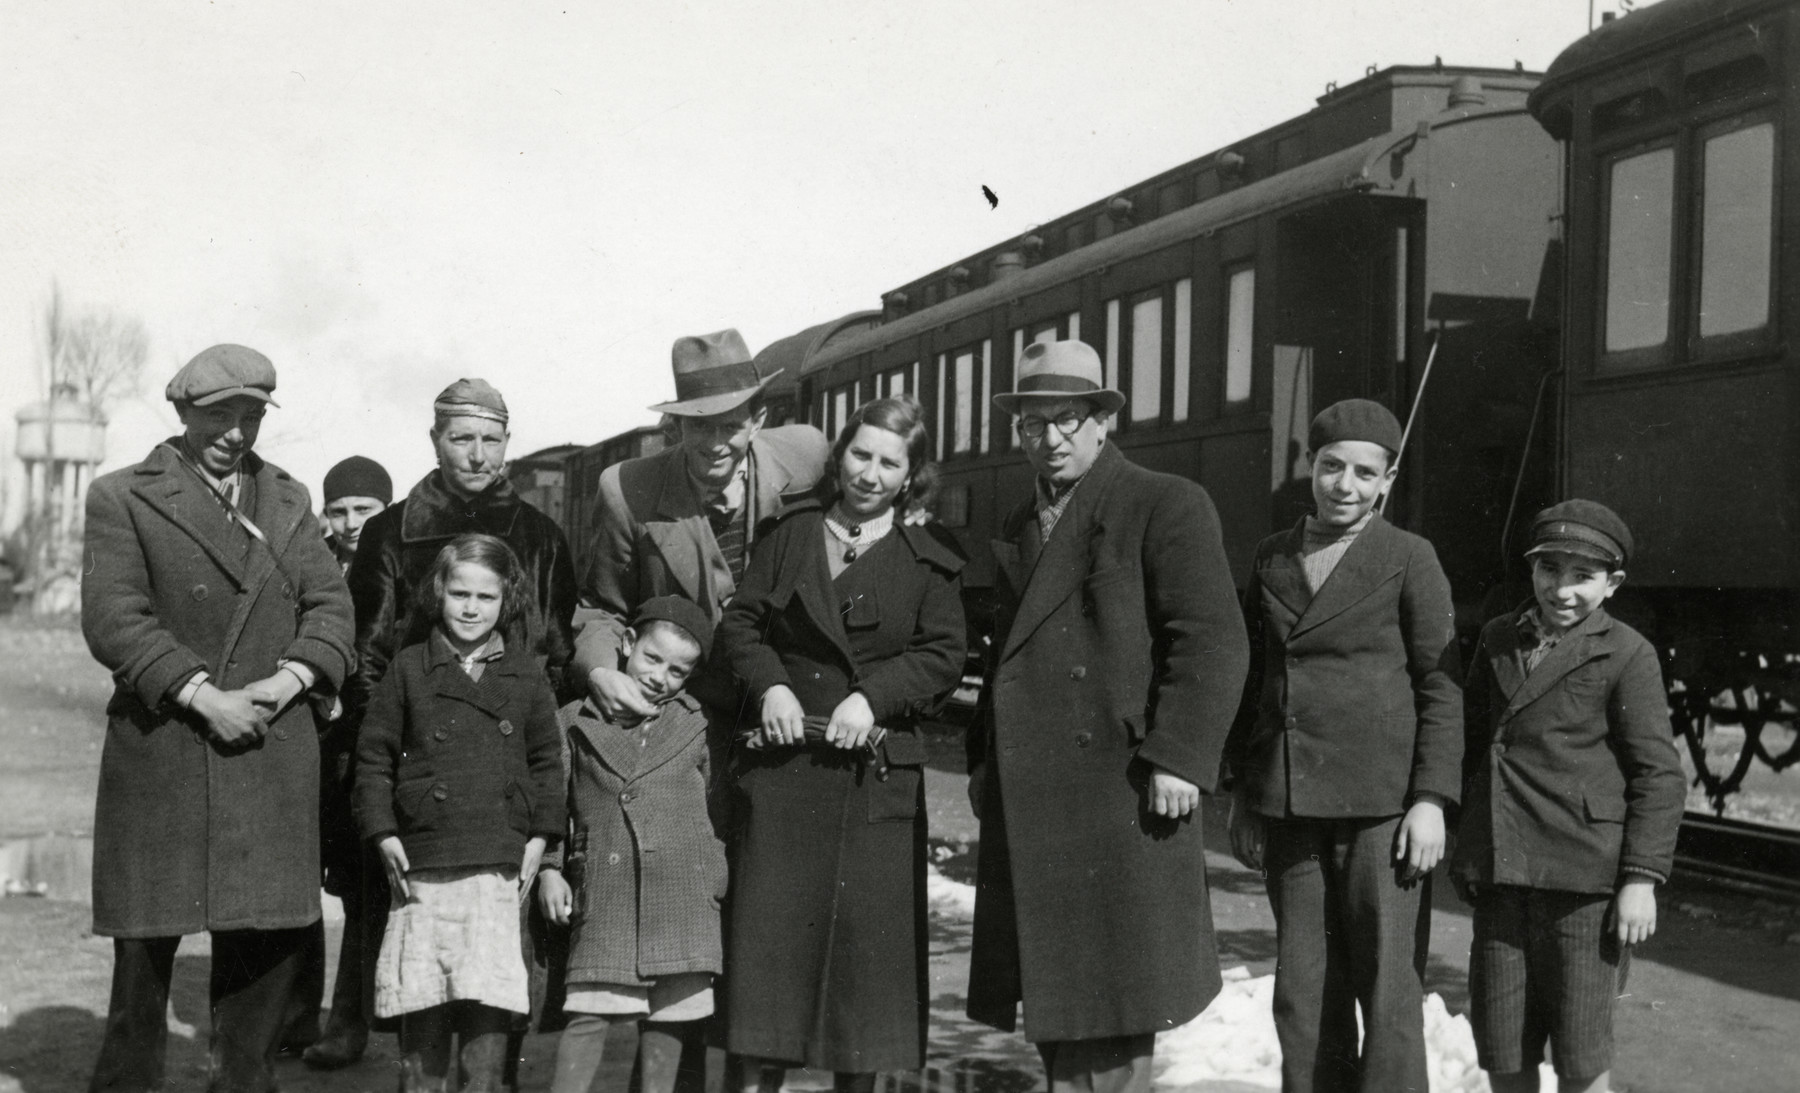 Rabbi Moise Cassorla (father of the donor) poses with his family in front of a train.   Rabbi Cassorla stands third from the right. His mother stands third from the left.